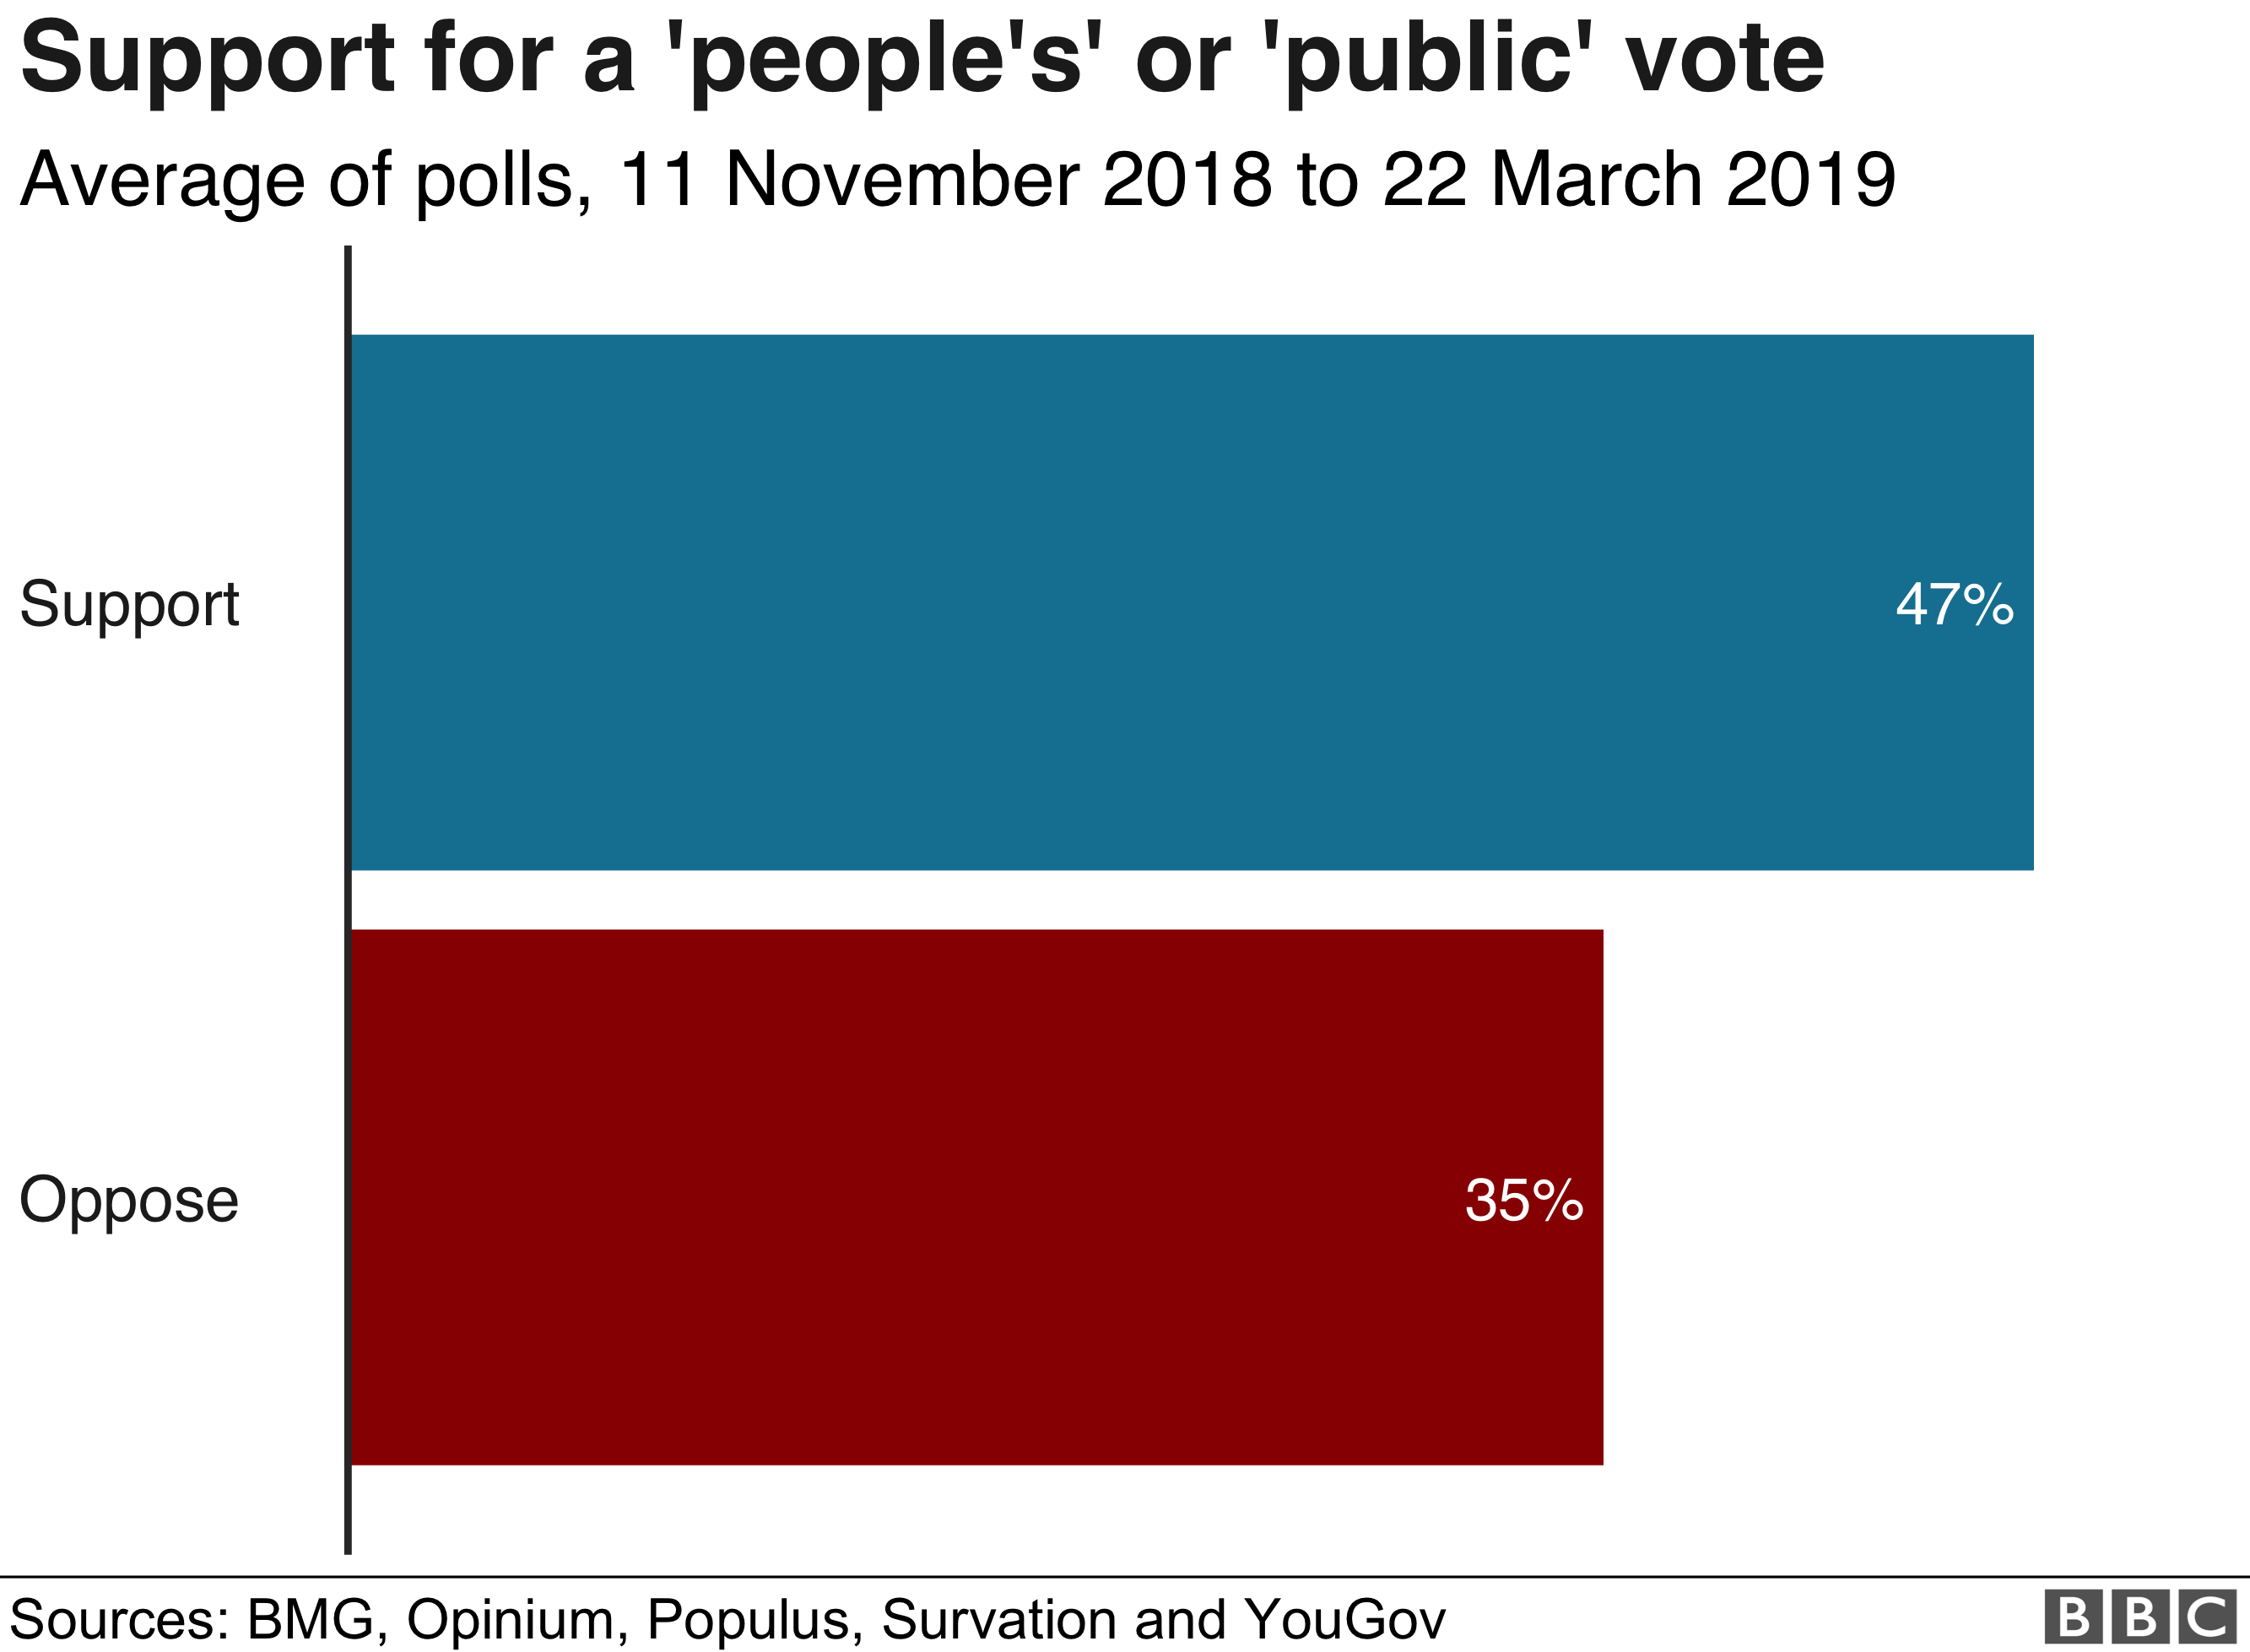 Chart showing support for a 'people's' or 'public' vote